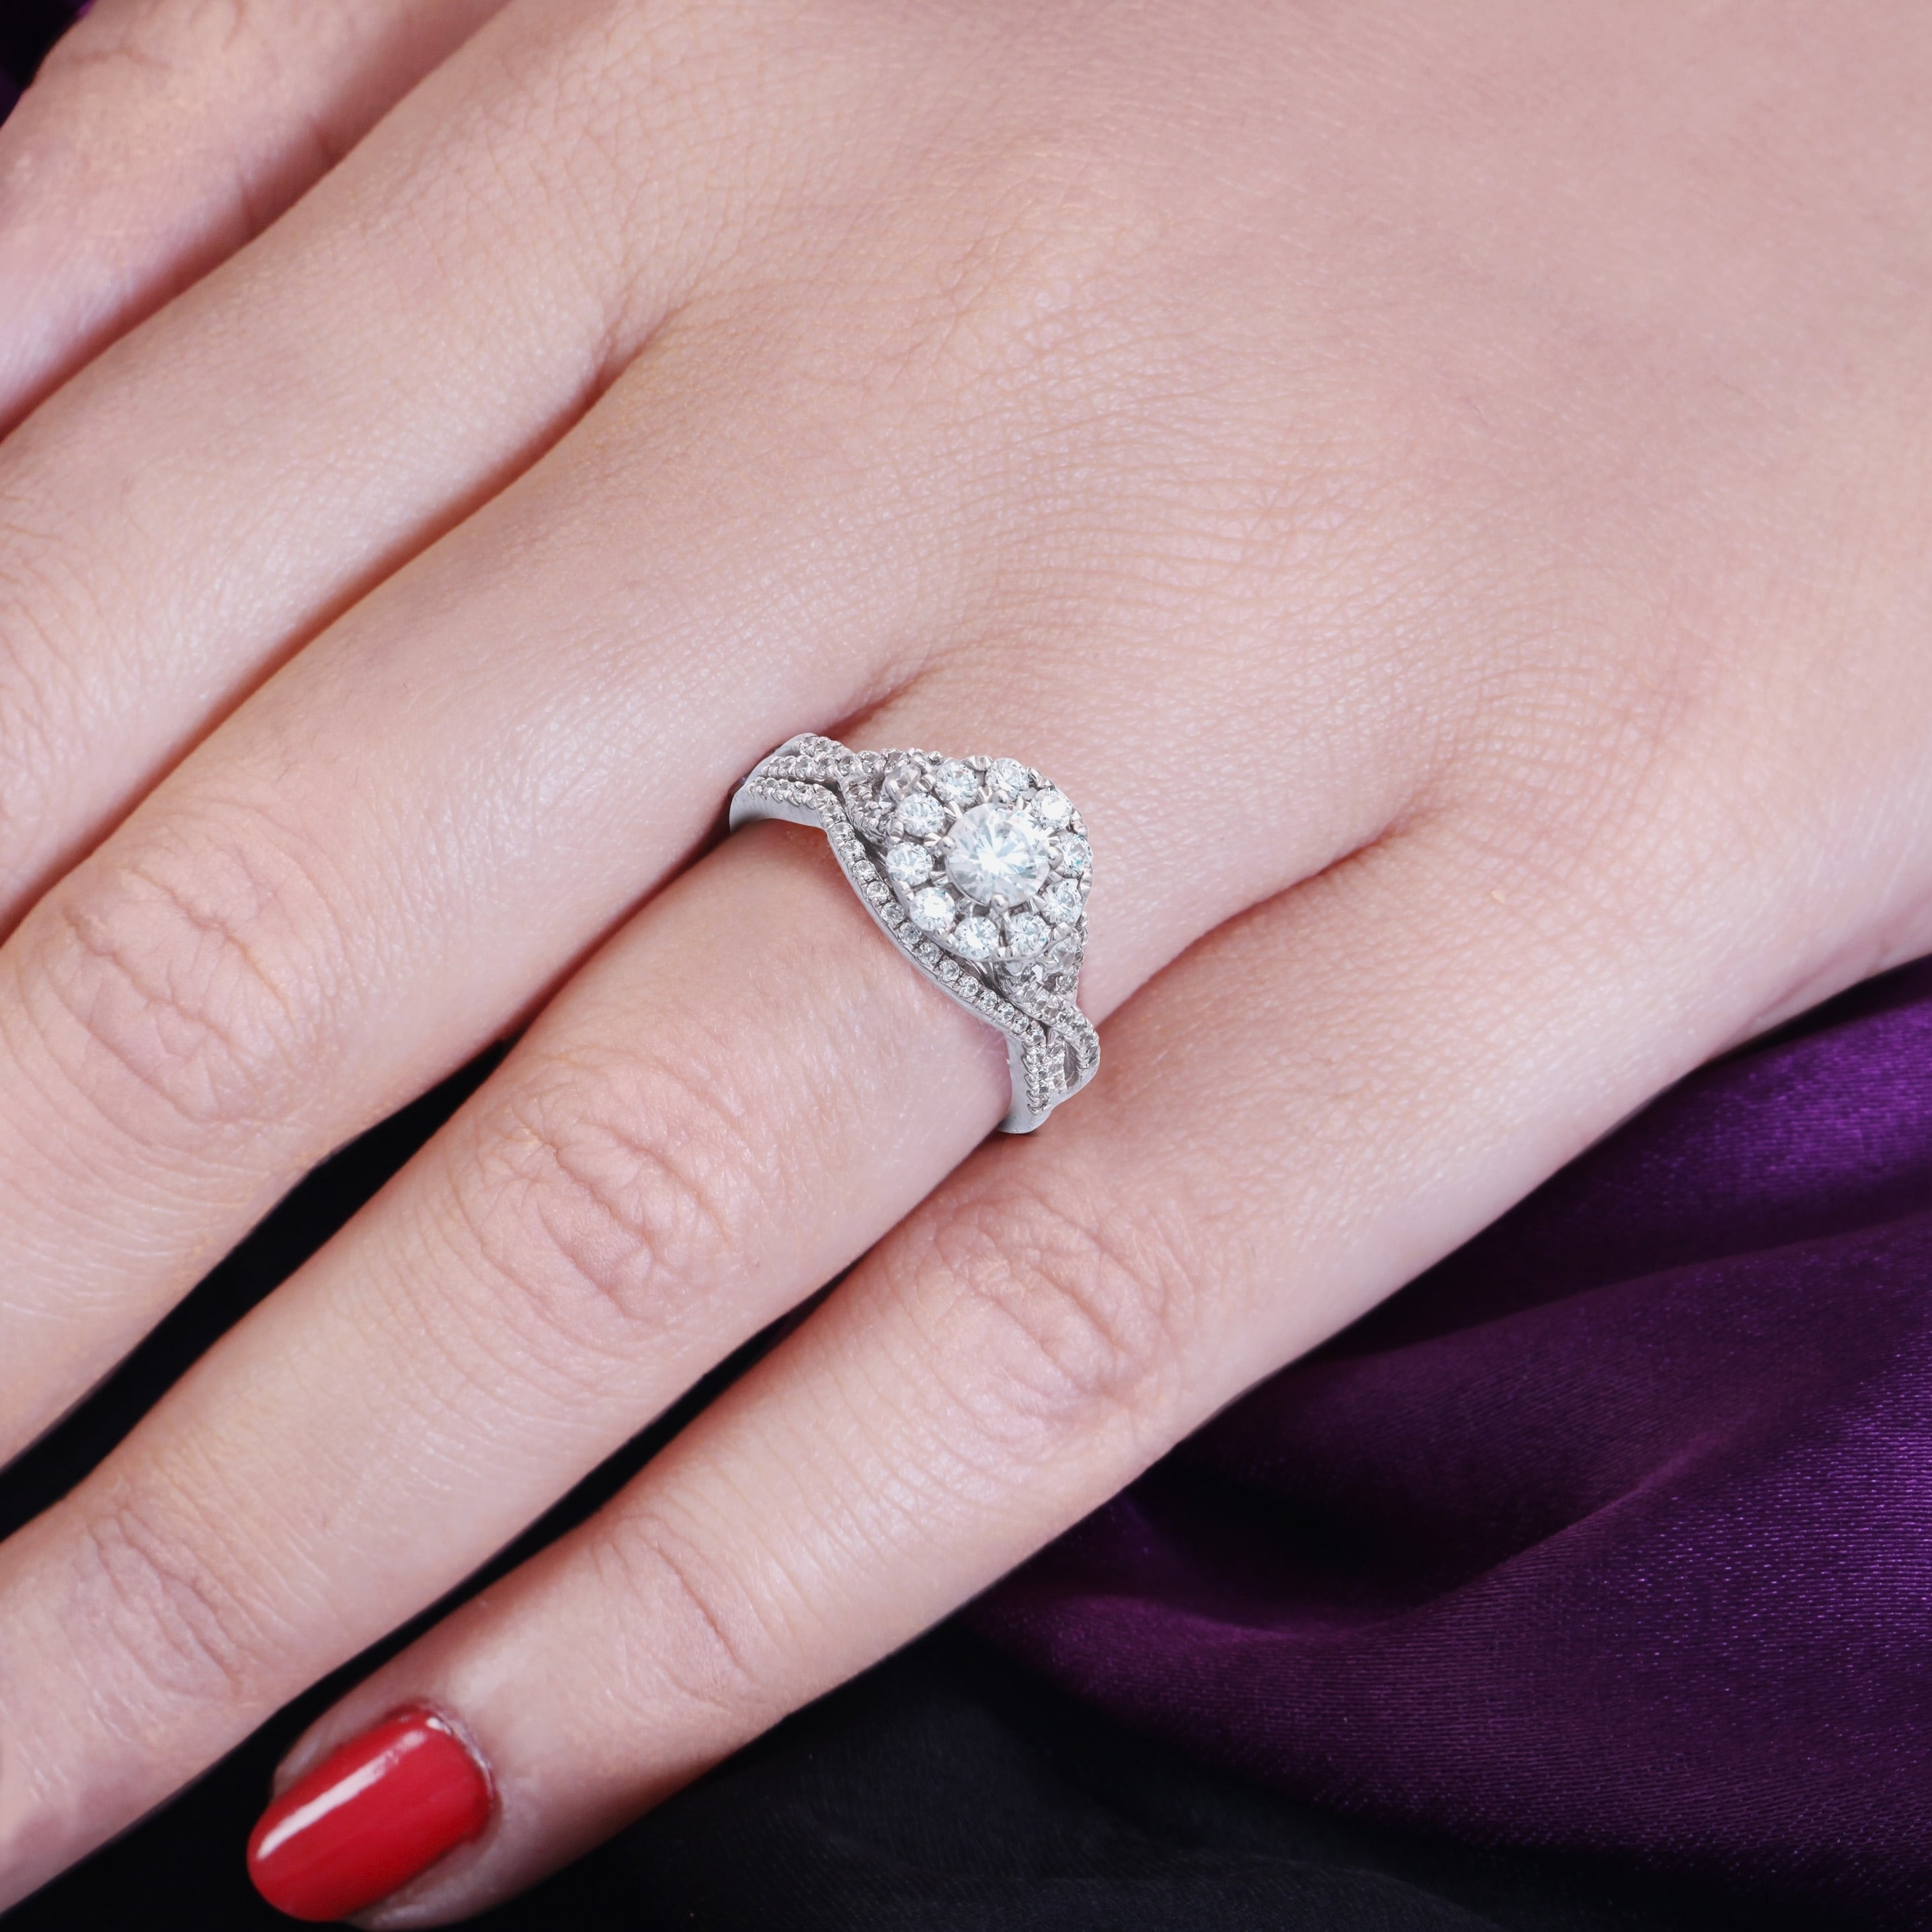 4697f96a943be Cali Trove 1 Ct Round Diamond Cluster Engagement Wedding Set In 10Kt White  Gold.